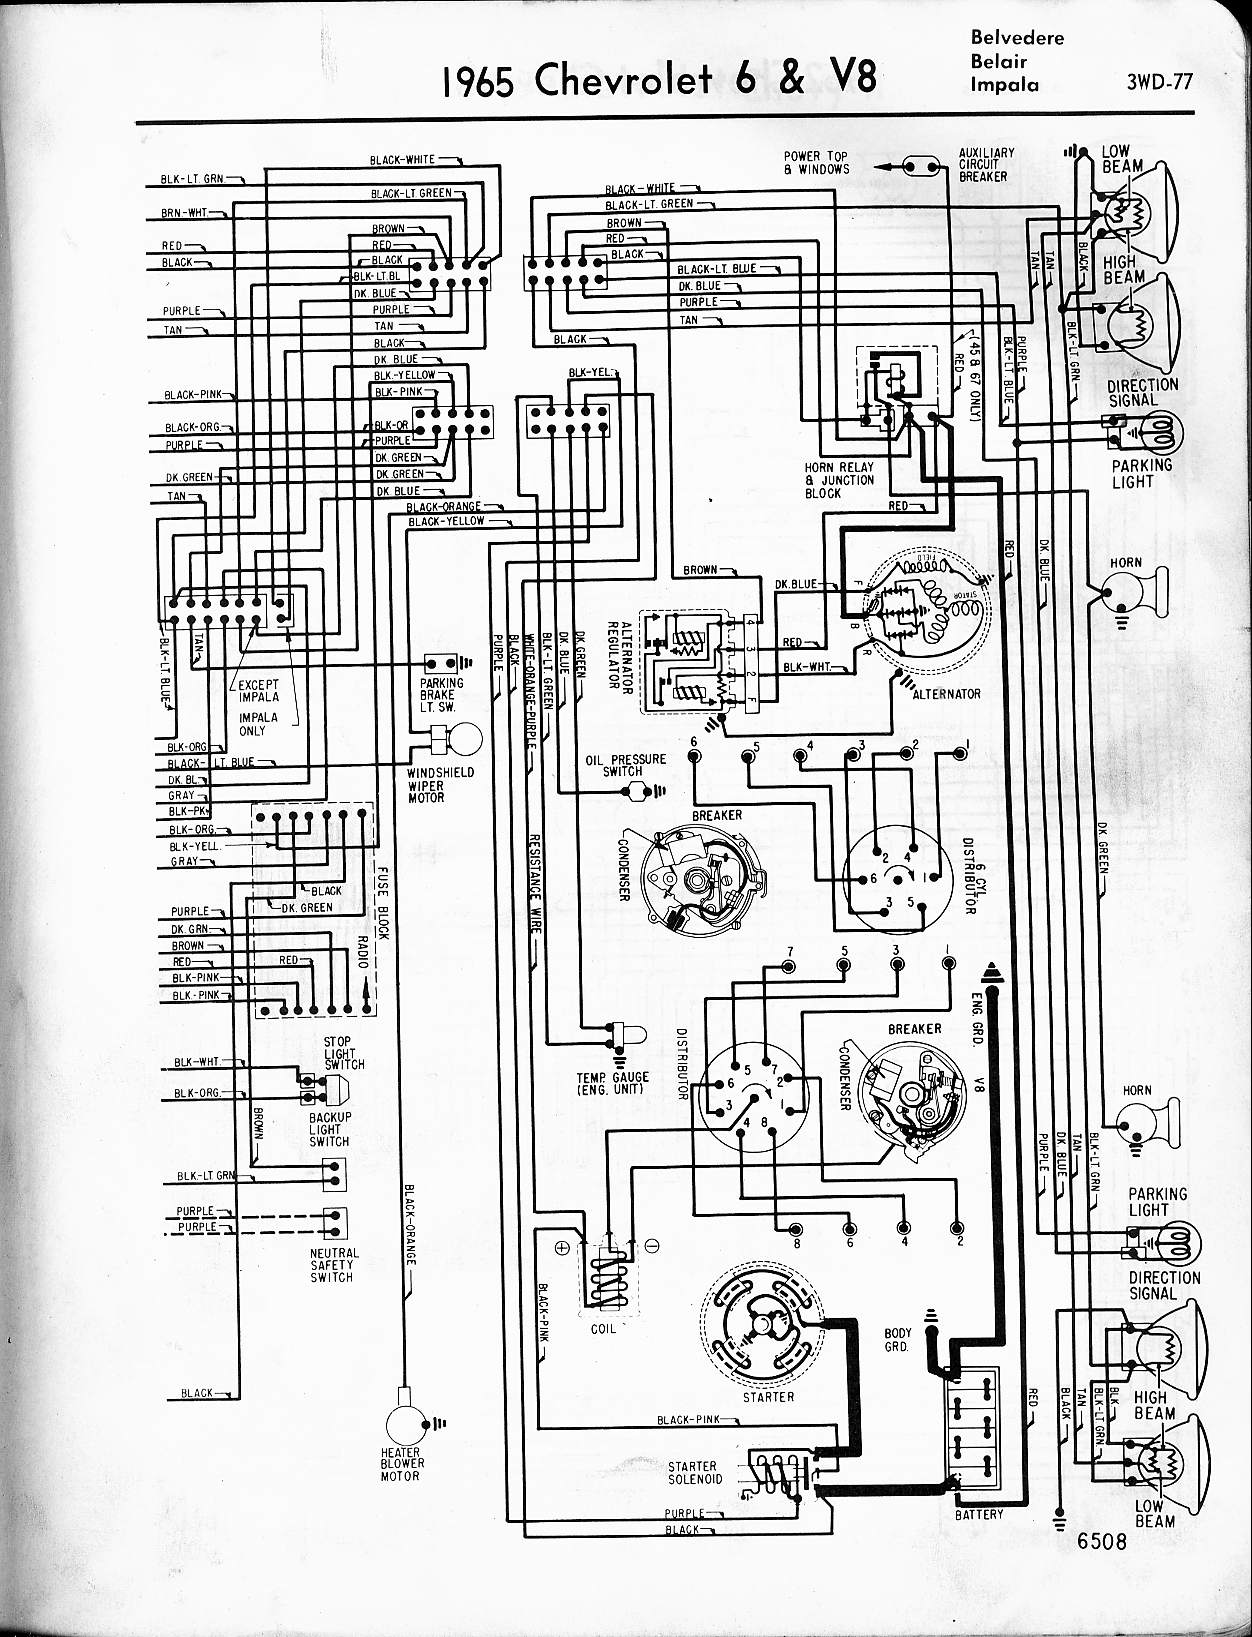 under hood lights wiring diagram schematic diagram 67 Chevy Impala